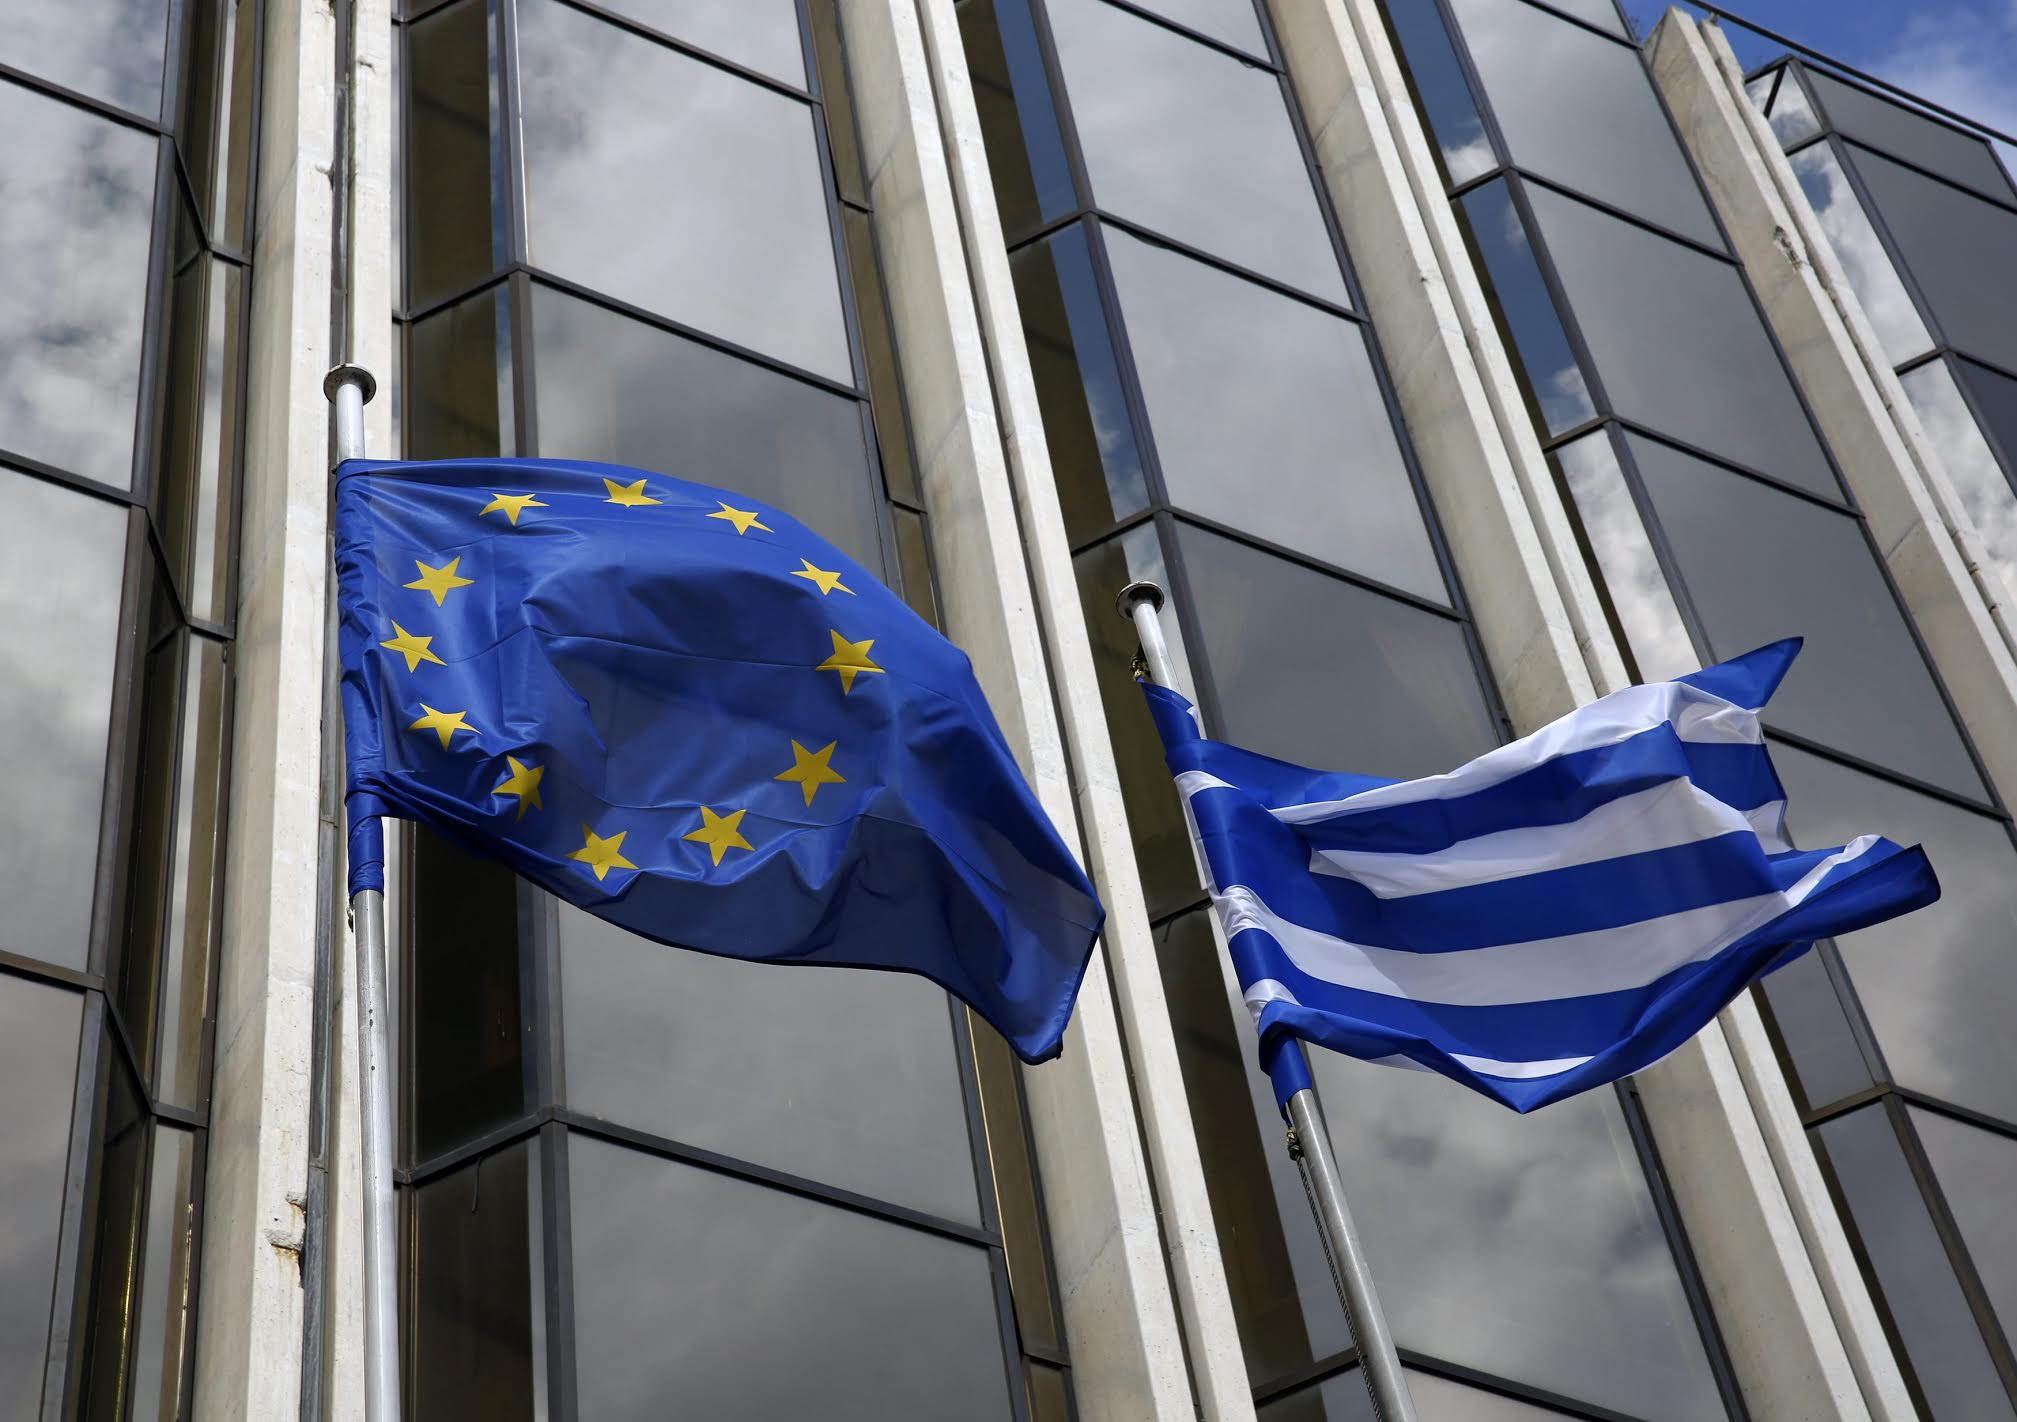 Differences between Greece and the Commission are diminished